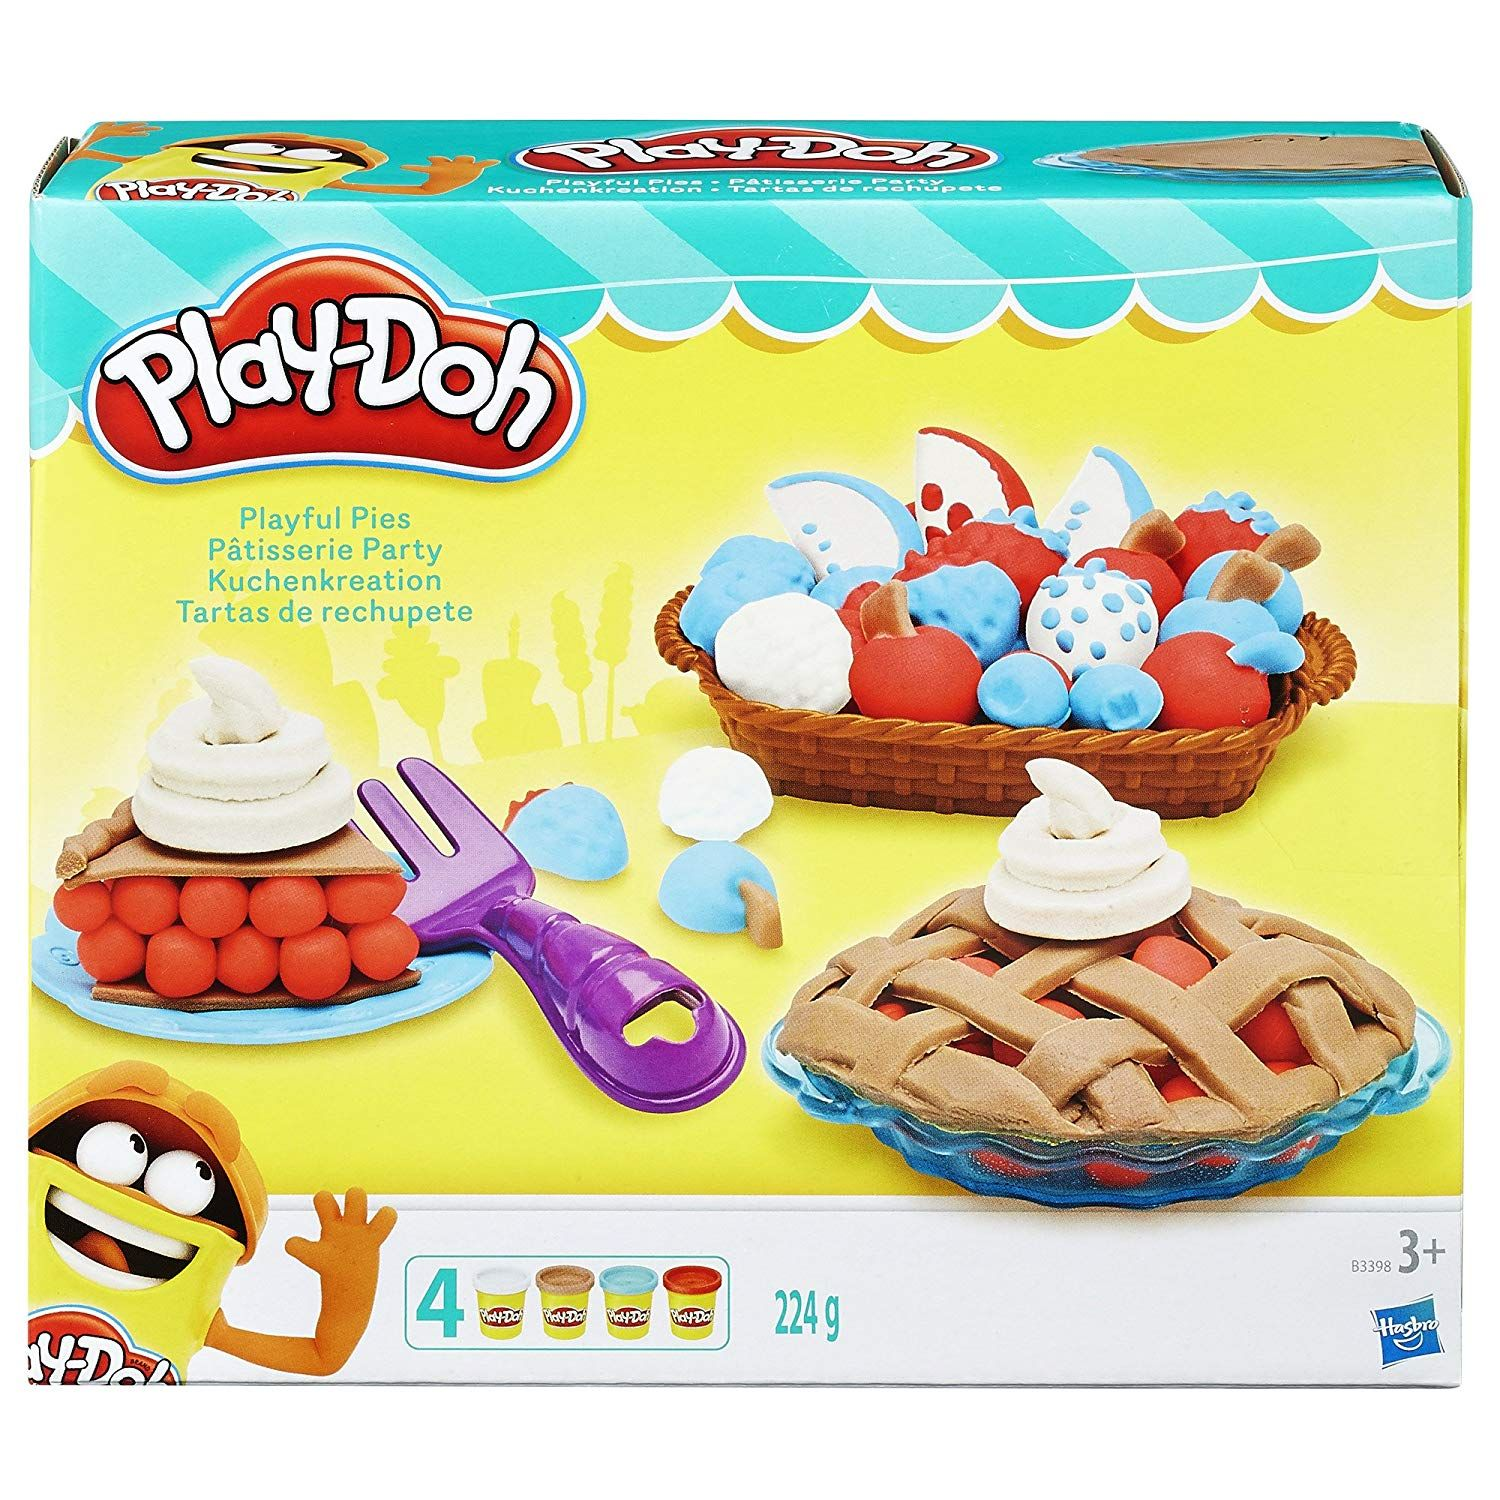 Play Doh Playful Pies Set Only 6 99 Reg 20 Save 65 On Amazon Head To Amazon To Score This Play Doh Playful Pies S Play Doh Easter Baskets Pie Shop